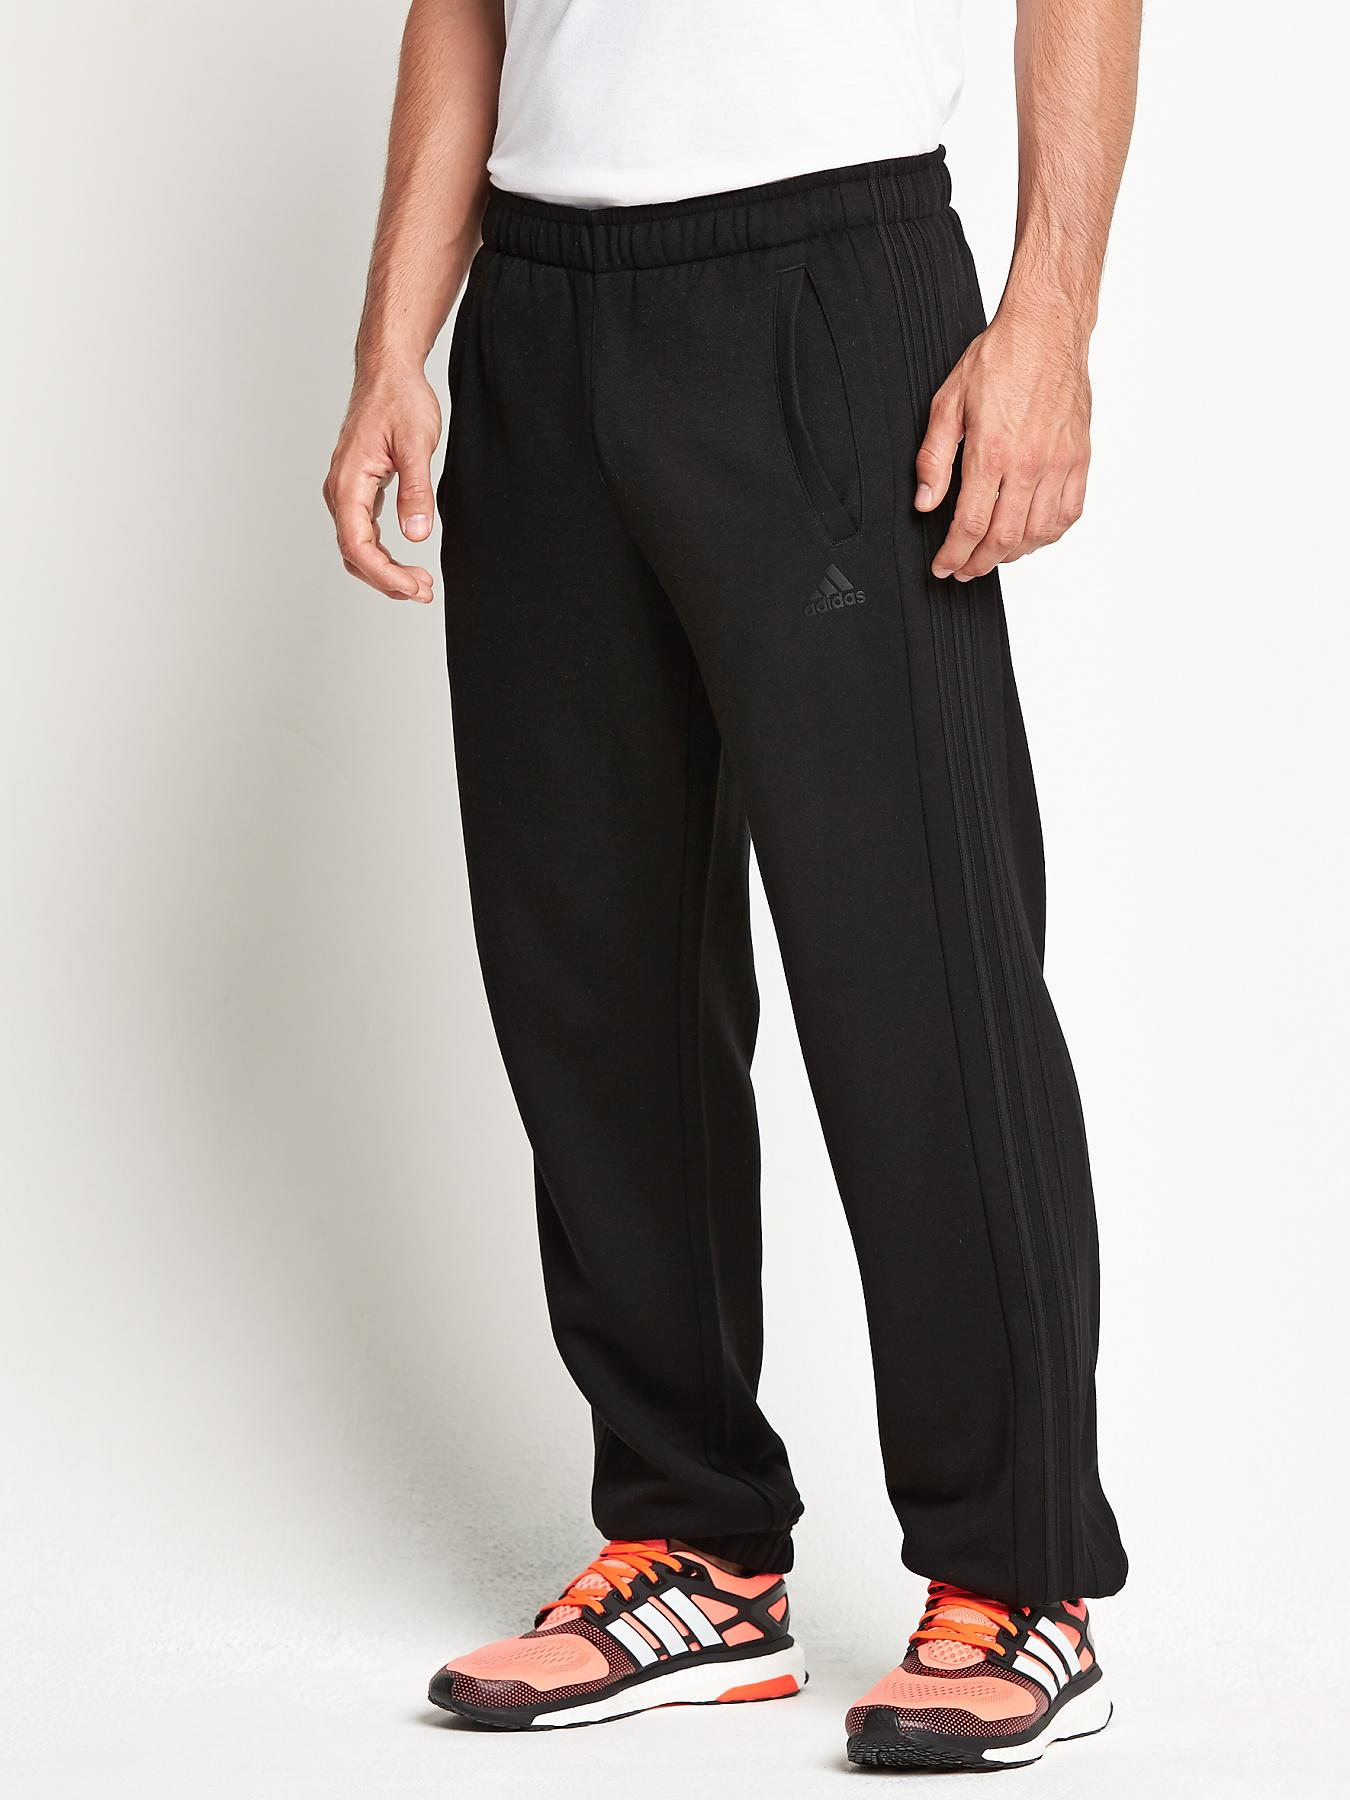 adidas Essentials Mens 3S Fleece Cuffed Pants - Black, Black